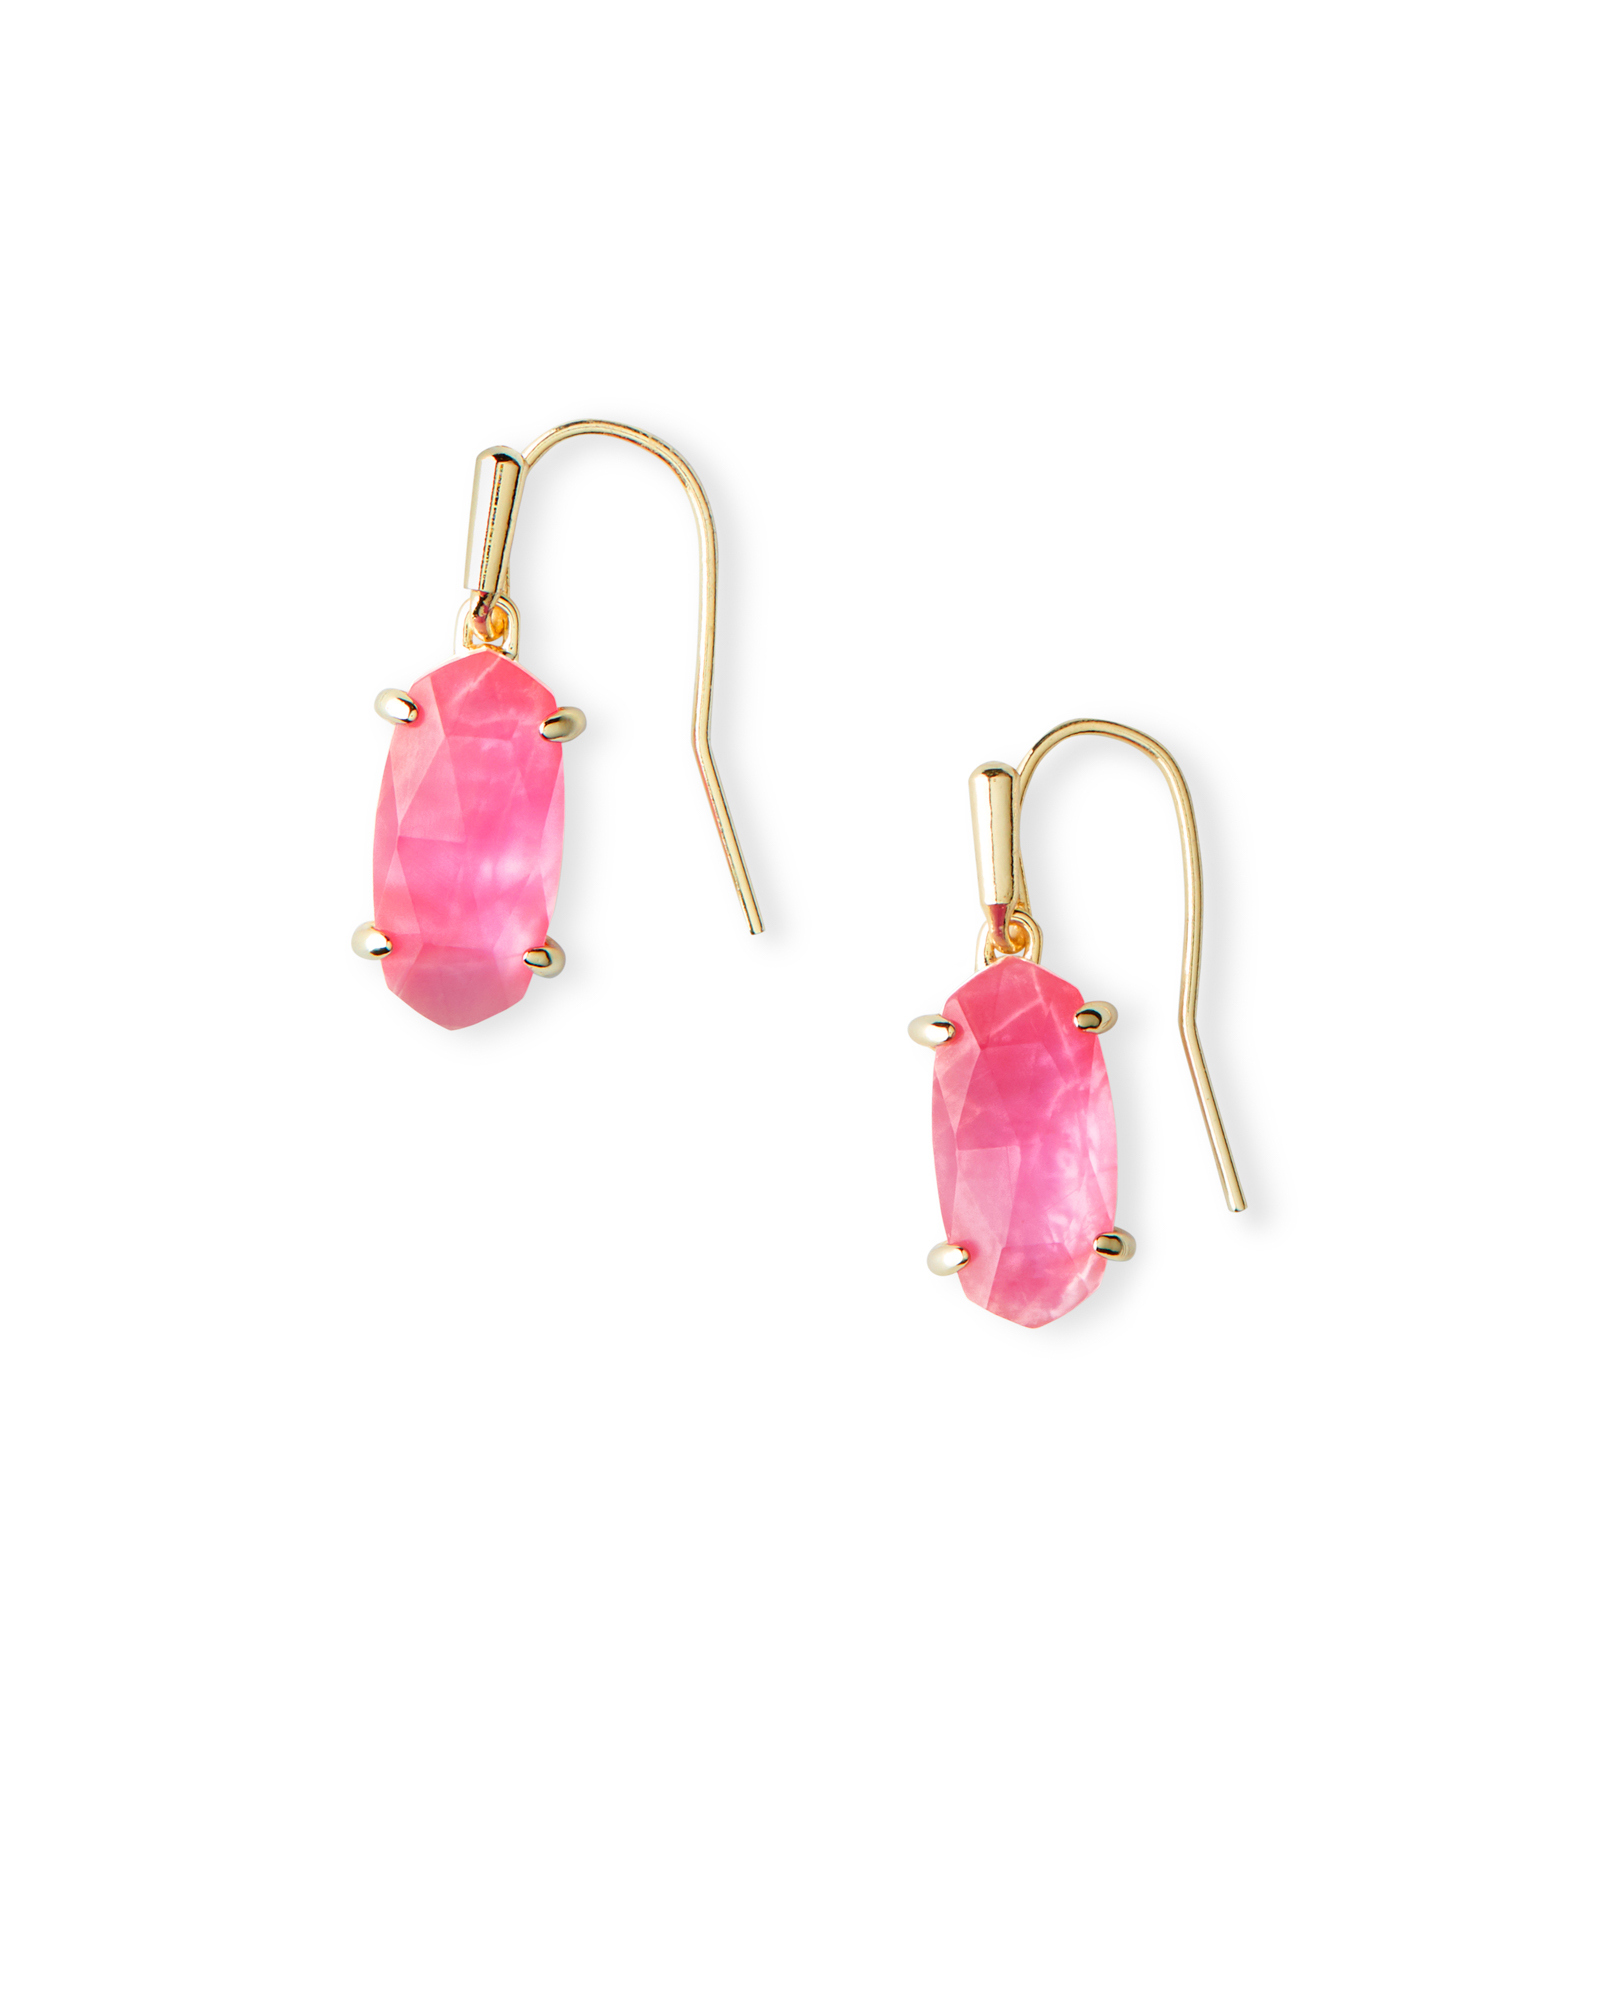 Lemmi Gold Drop Earrings in Azalea Illusion